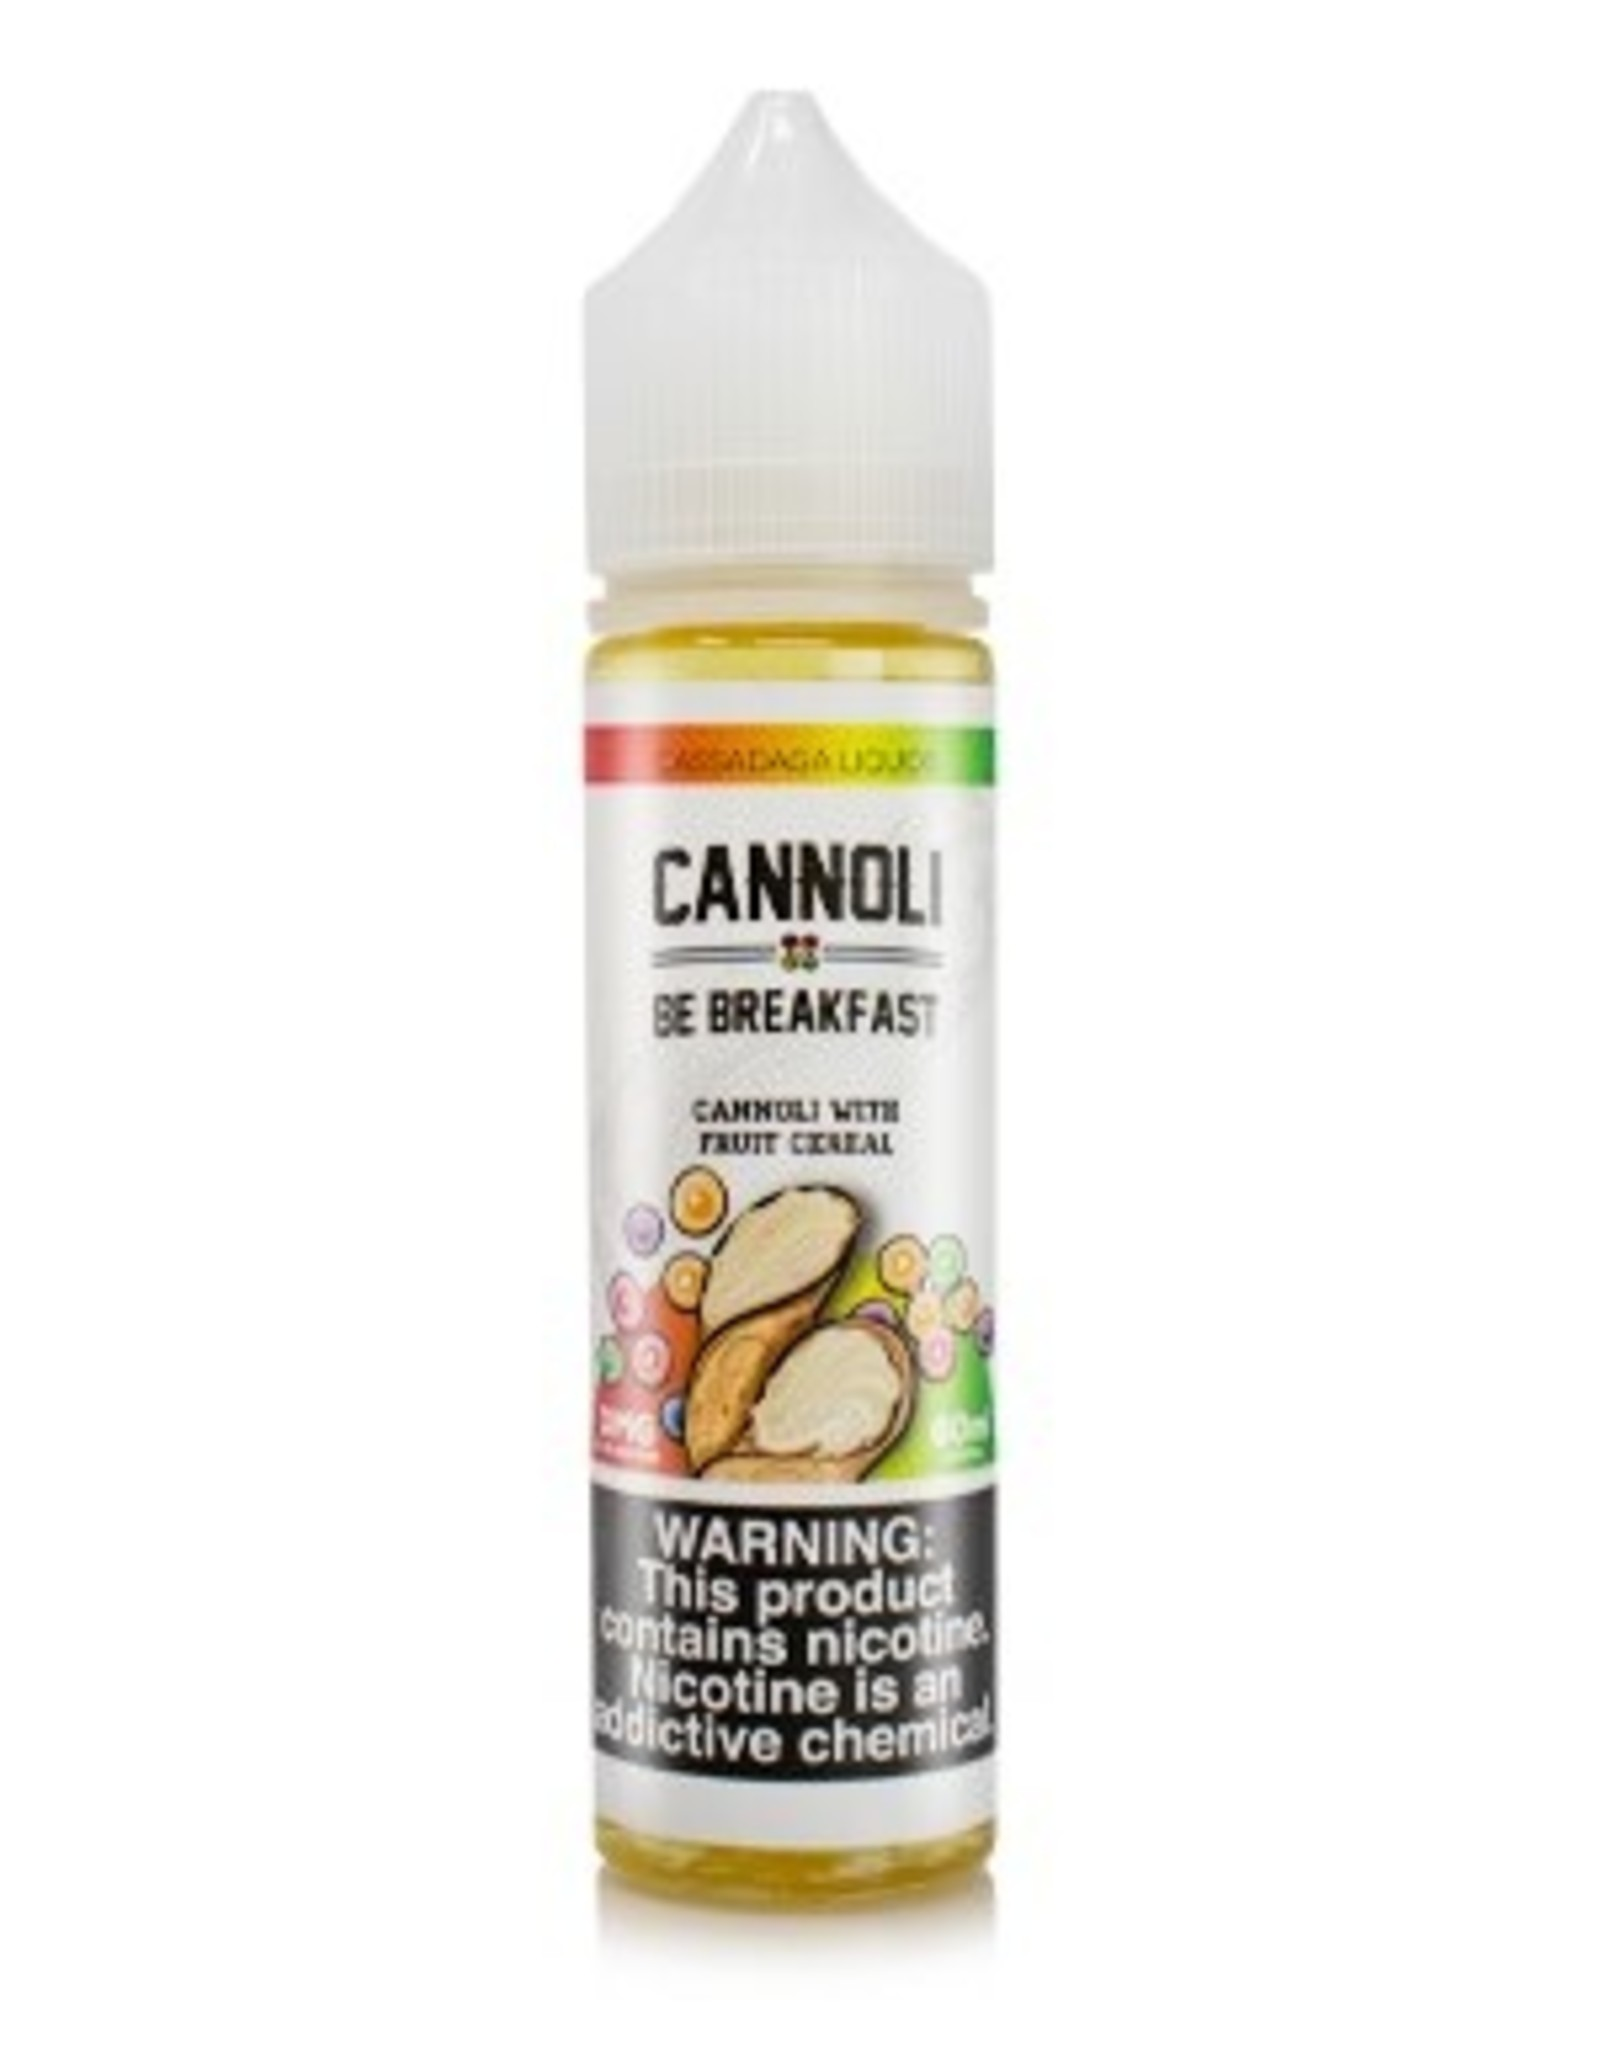 Cassadaga Liquids Cannoli be Breakfast